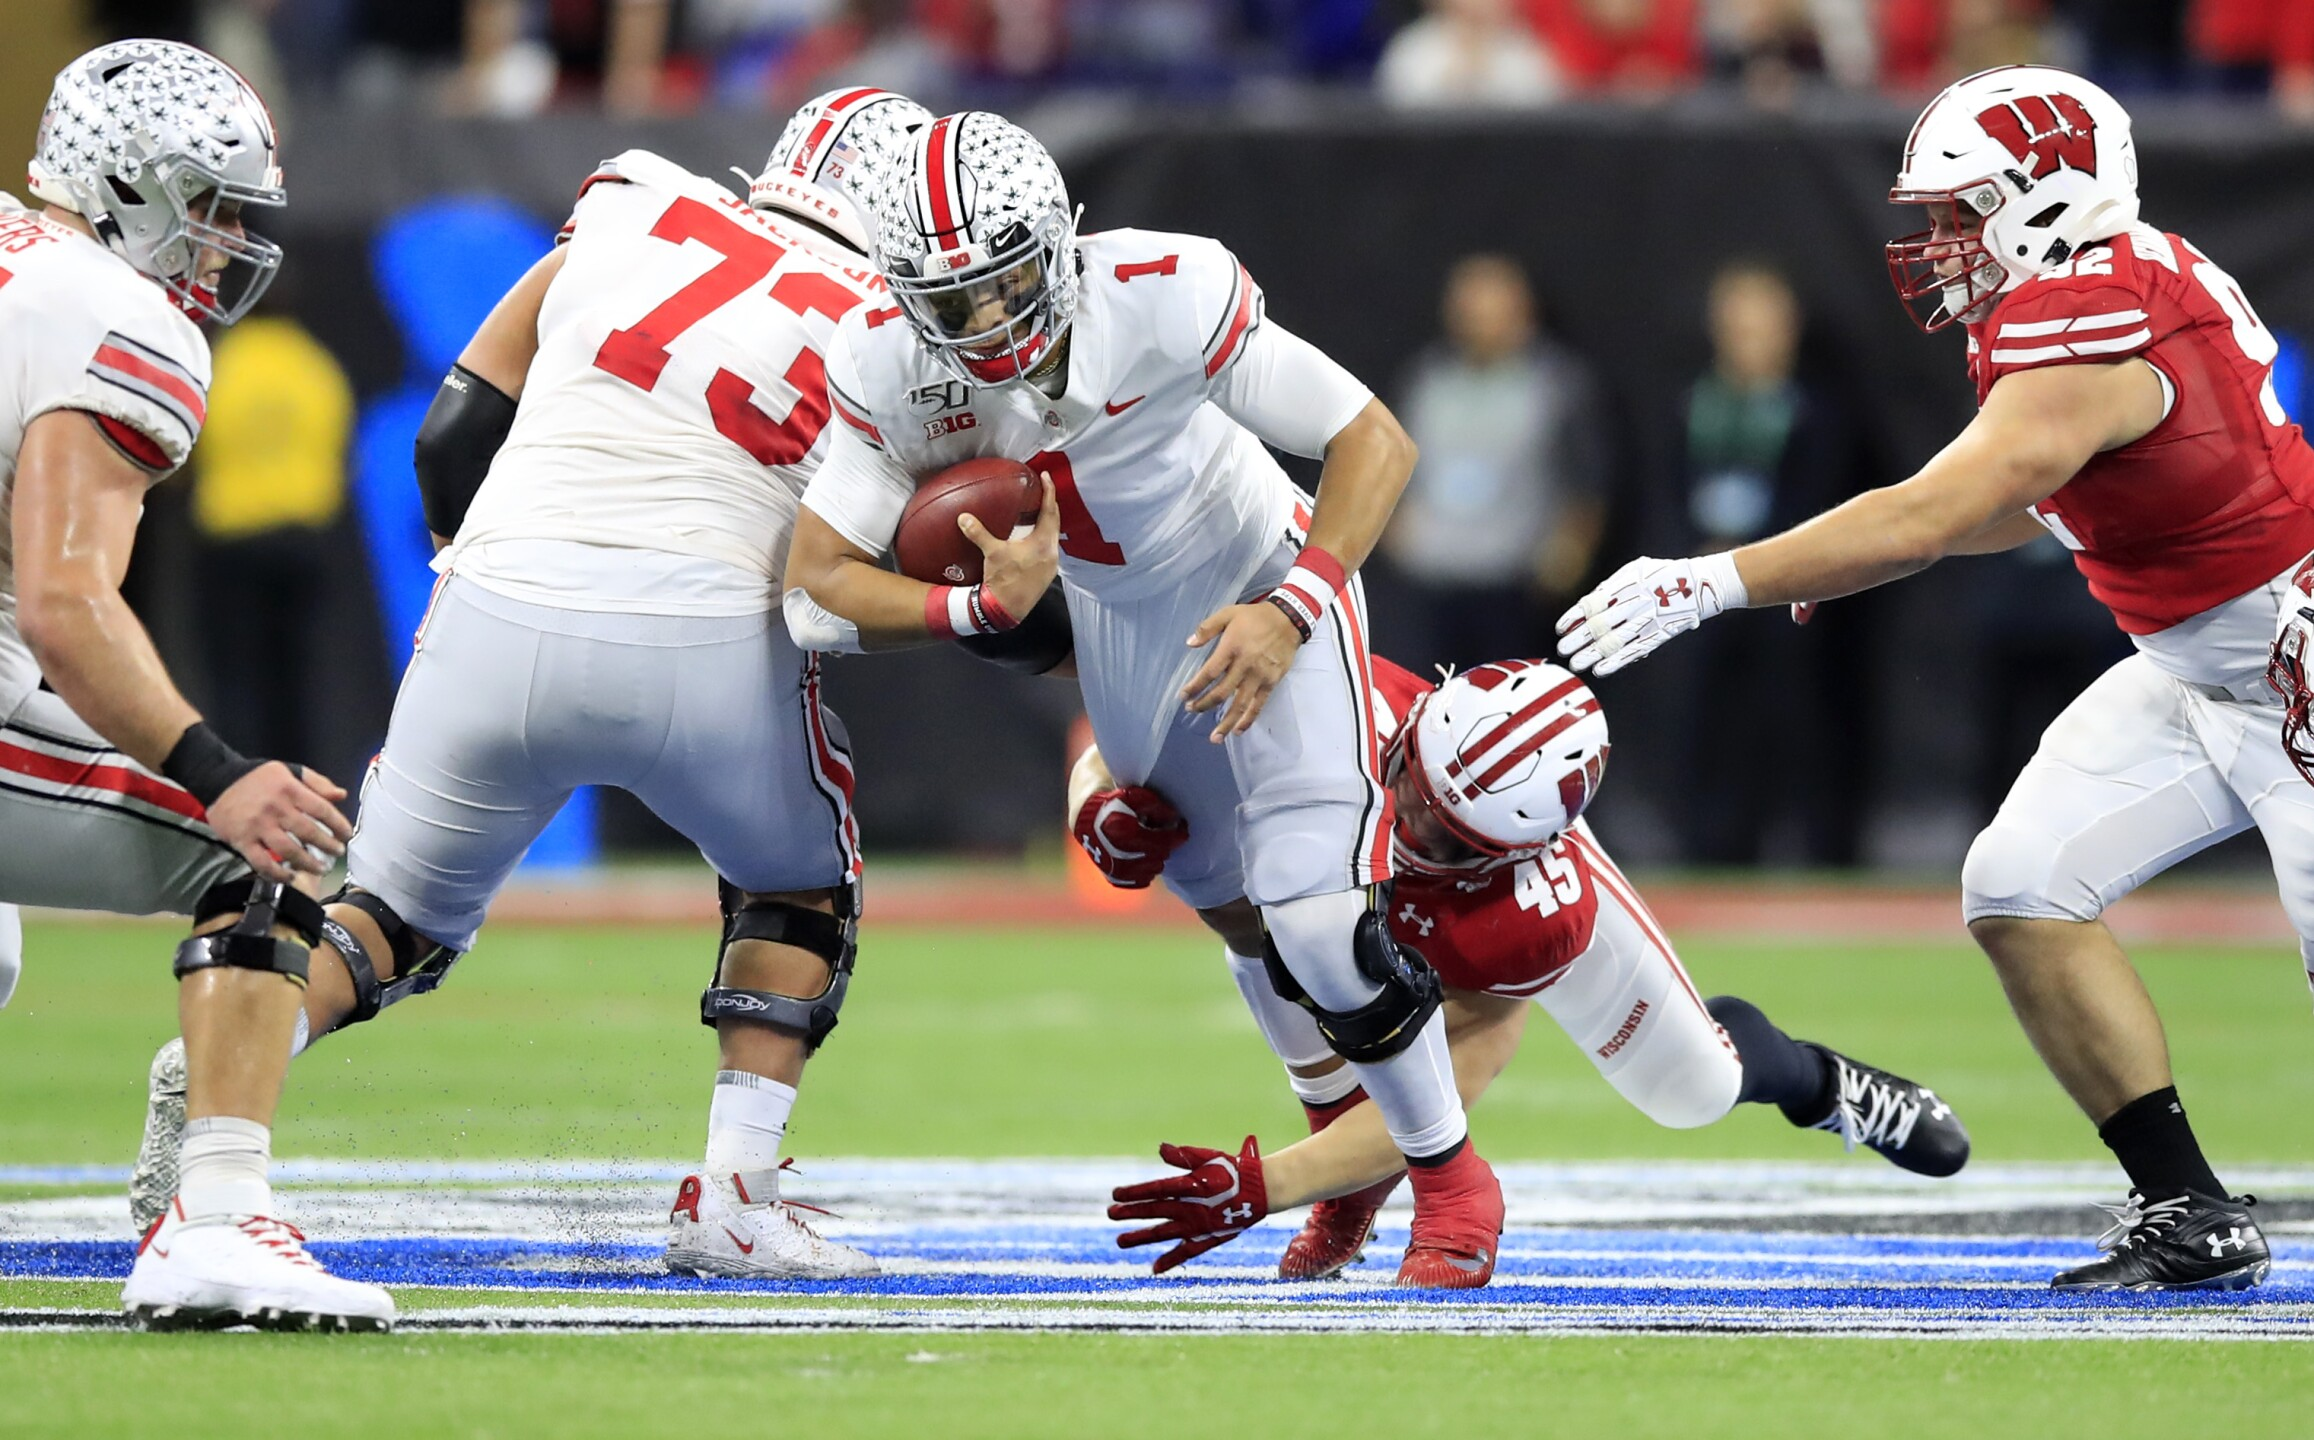 Big Ten Football Championship - Ohio State v Wisconsin